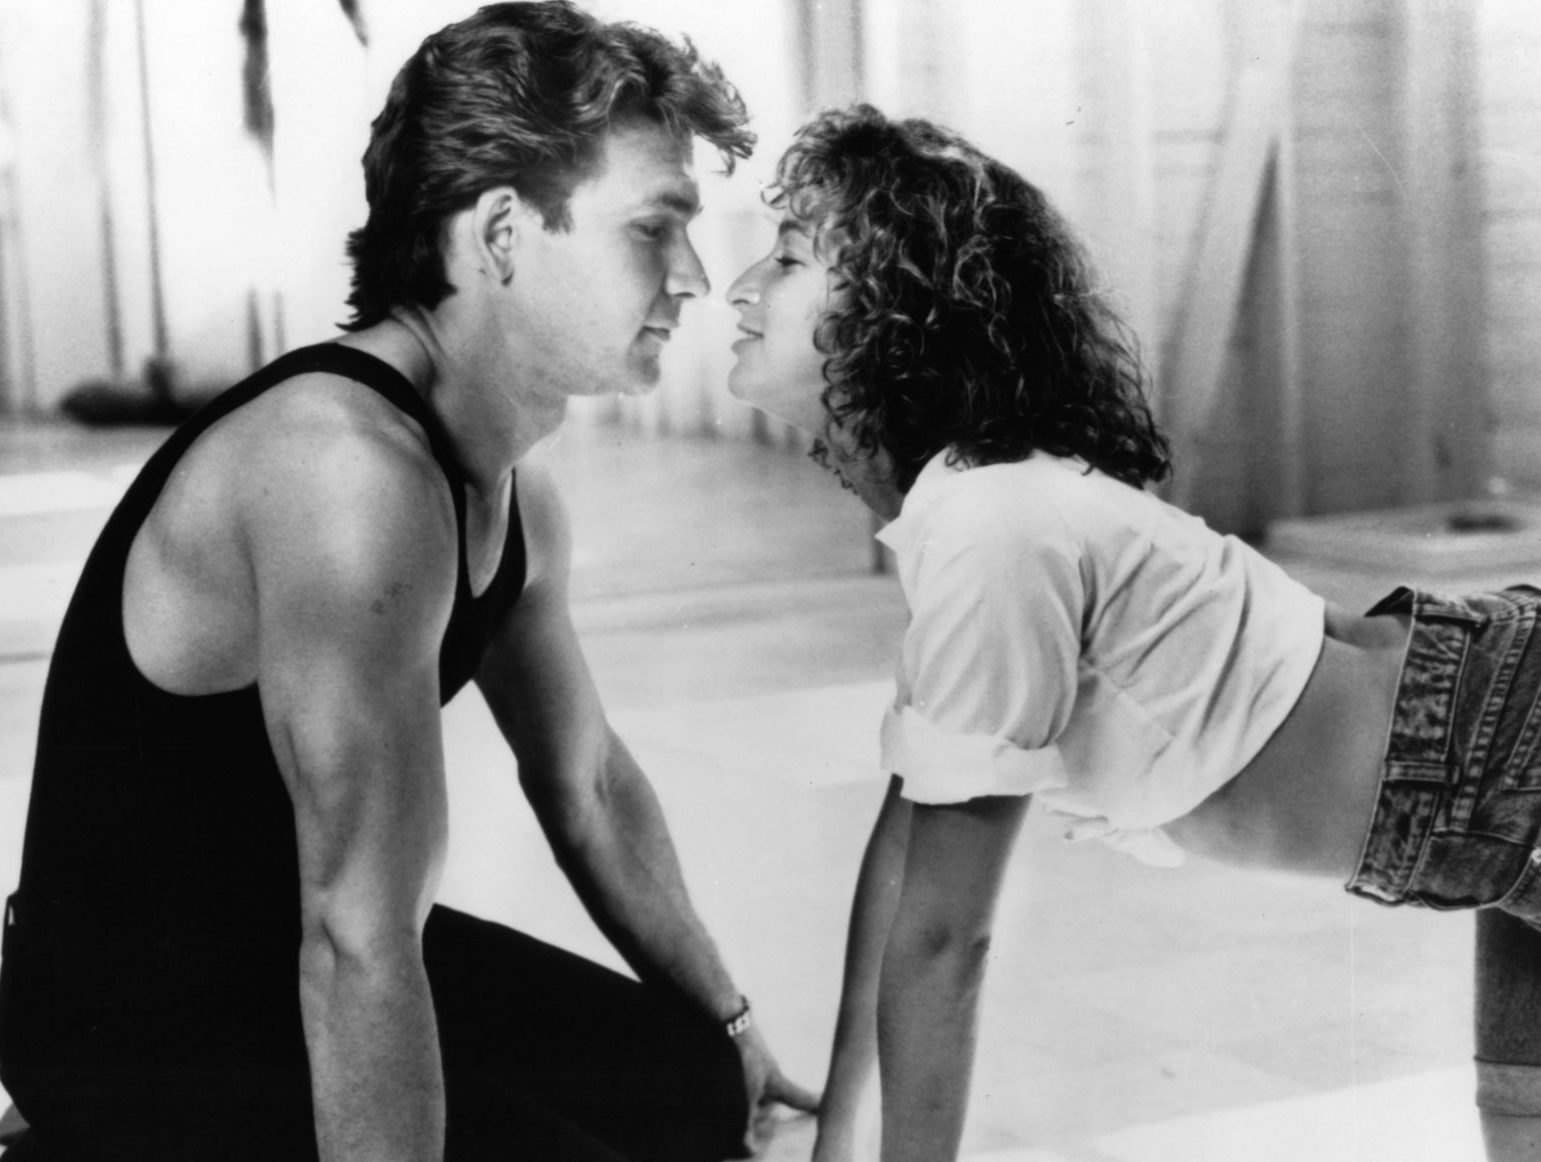 Patrick Swayze and Jennifer Grey 2048x1638 1 e1616749868109 1 30 Things You Probably Didn't Know About Dirty Dancing